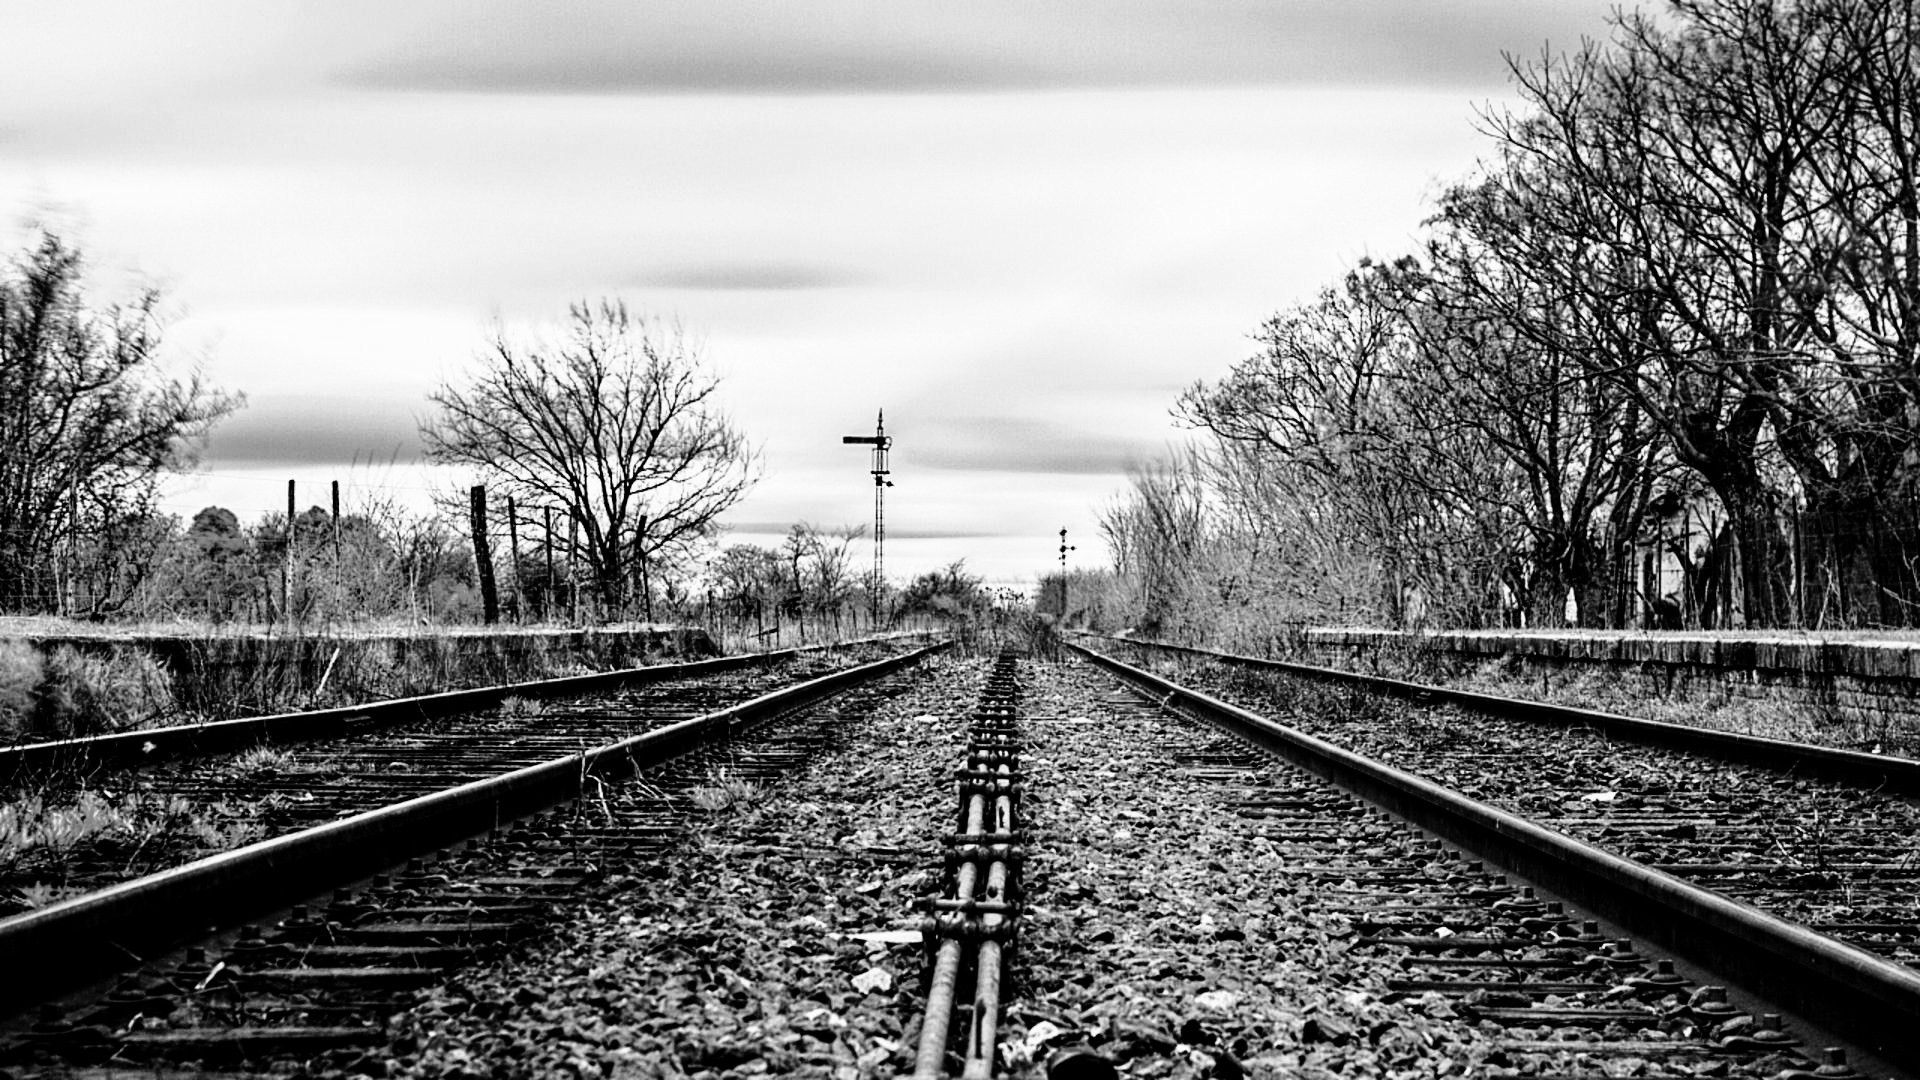 Hd wallpaper photography - Download Railway Track Black And White Photography Hd Wallpaper